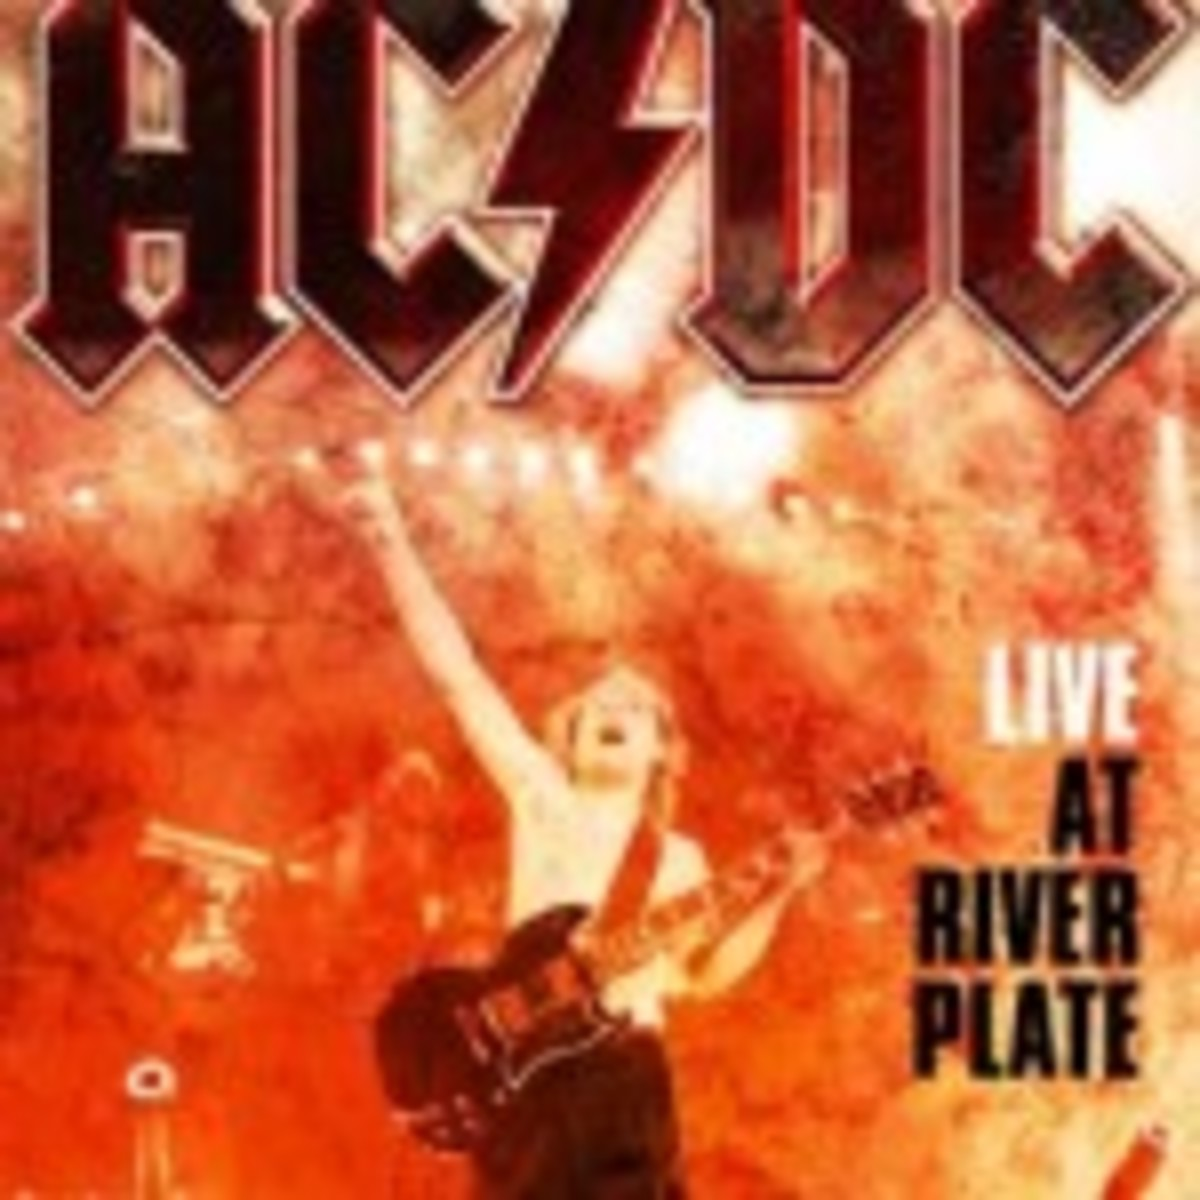 ACDC_Live at River Plate cover